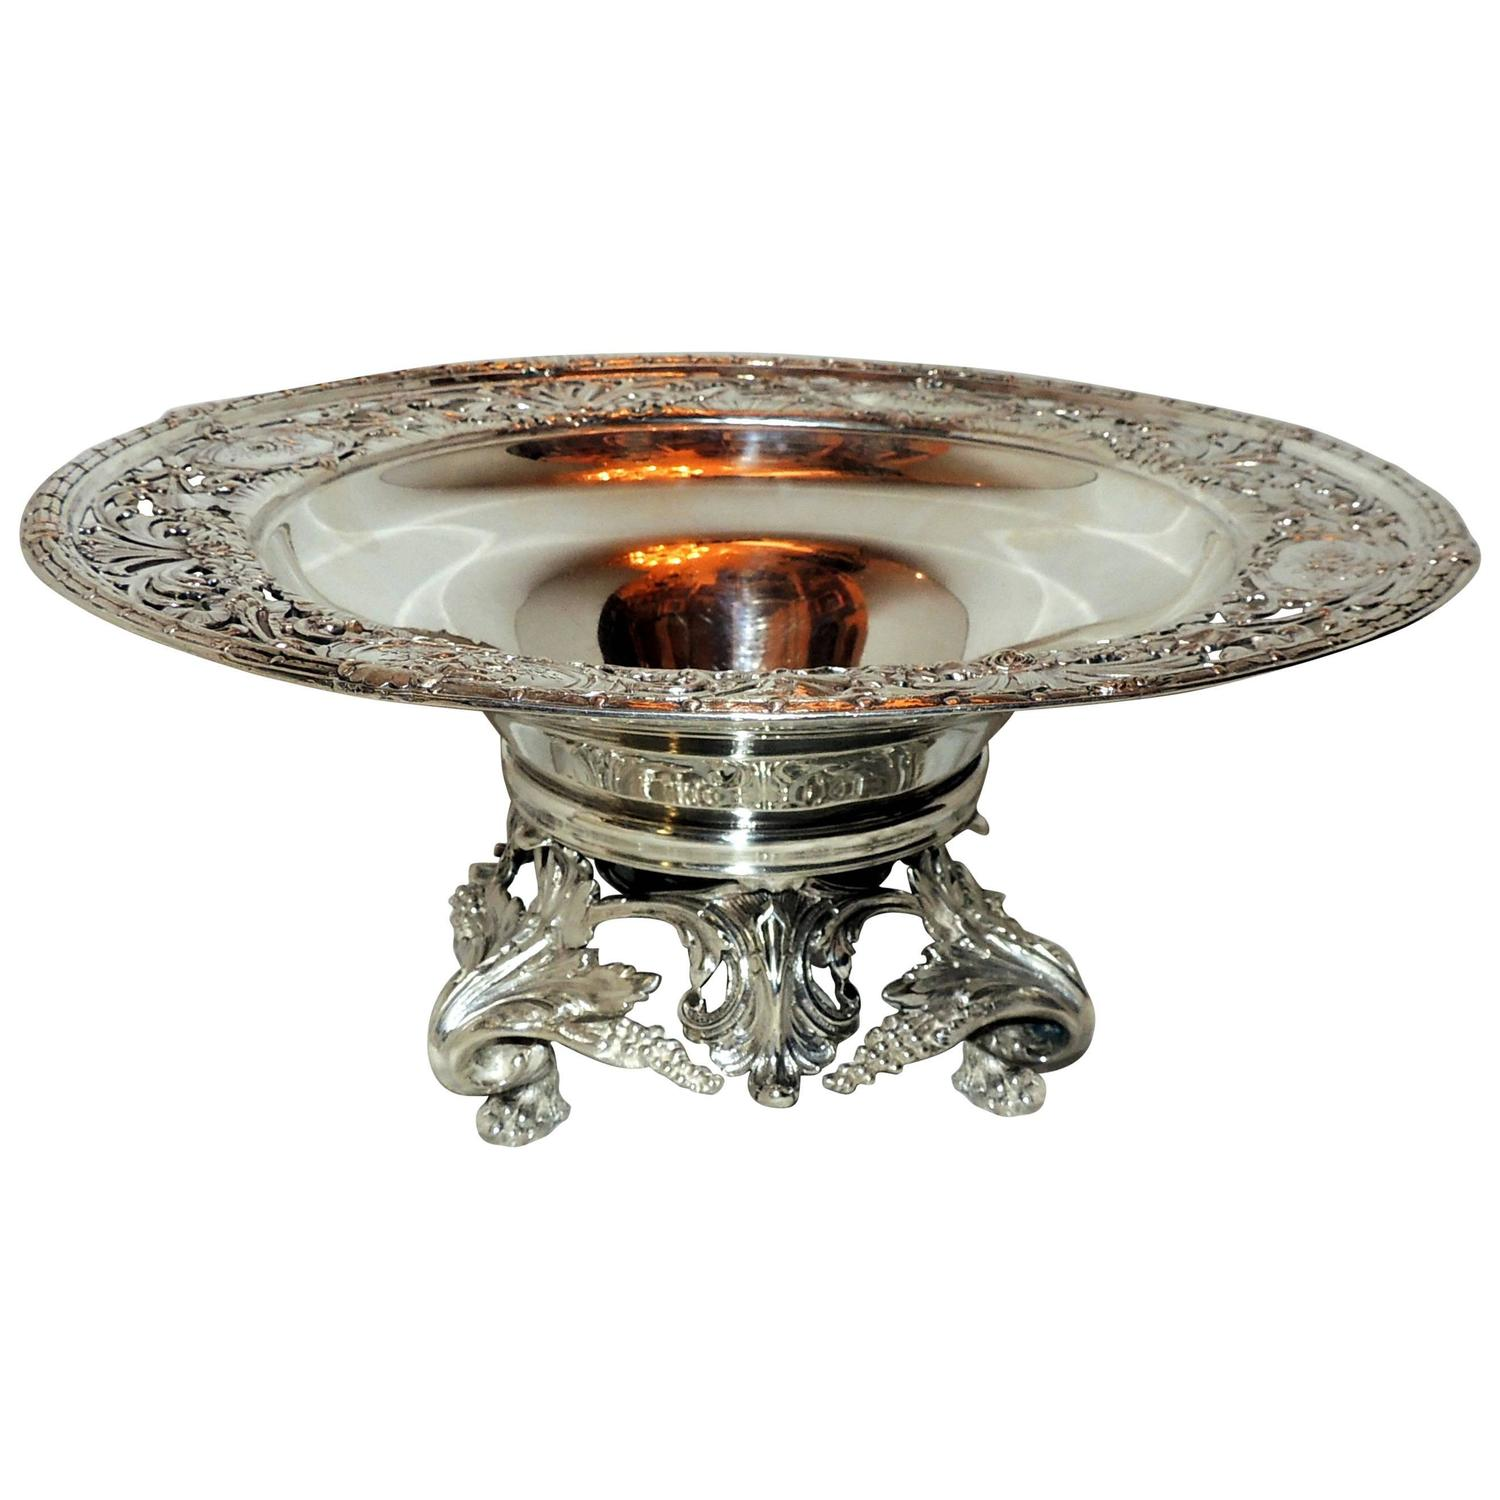 Monumental redlich and co sterling silver footed floral pierced bowl centerpiece for sale at - Footed bowl centerpiece ...